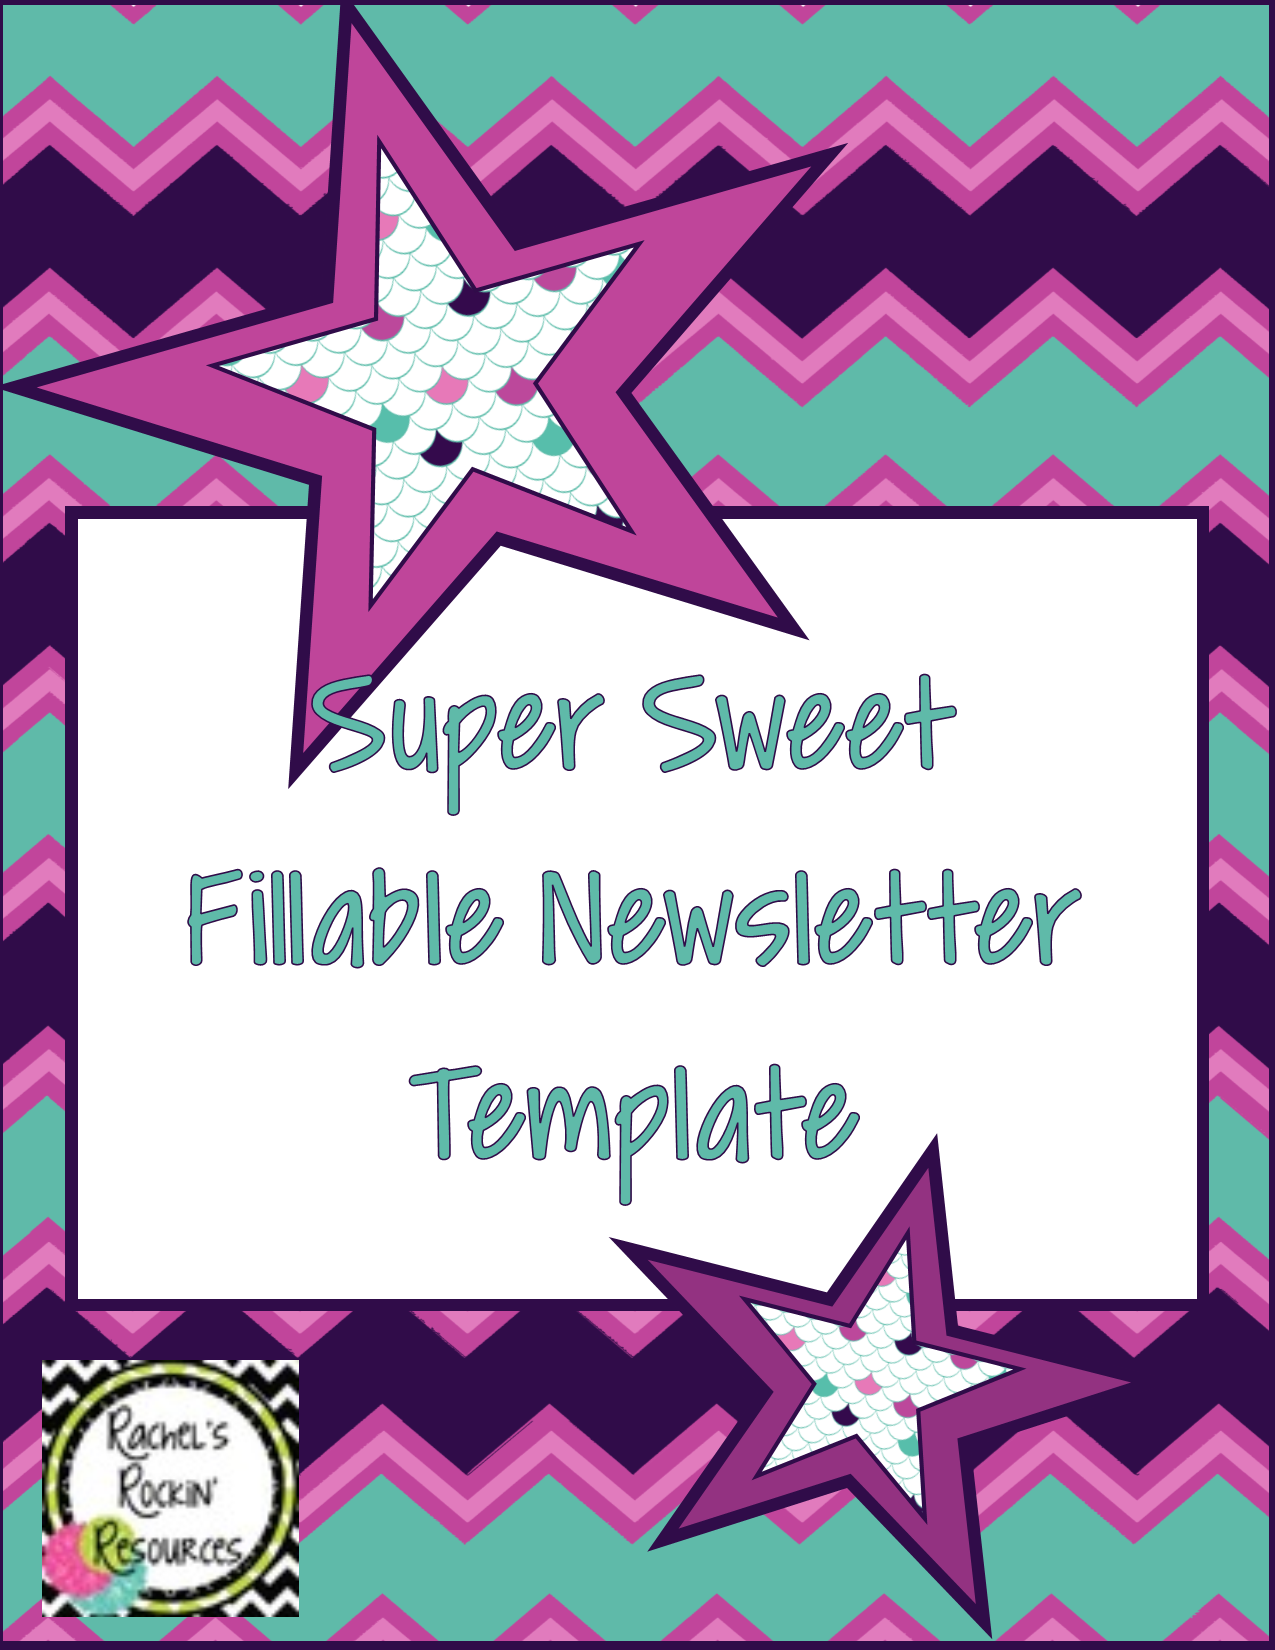 Newsletter Template Fillable Super Sweet Rachel S Rockin